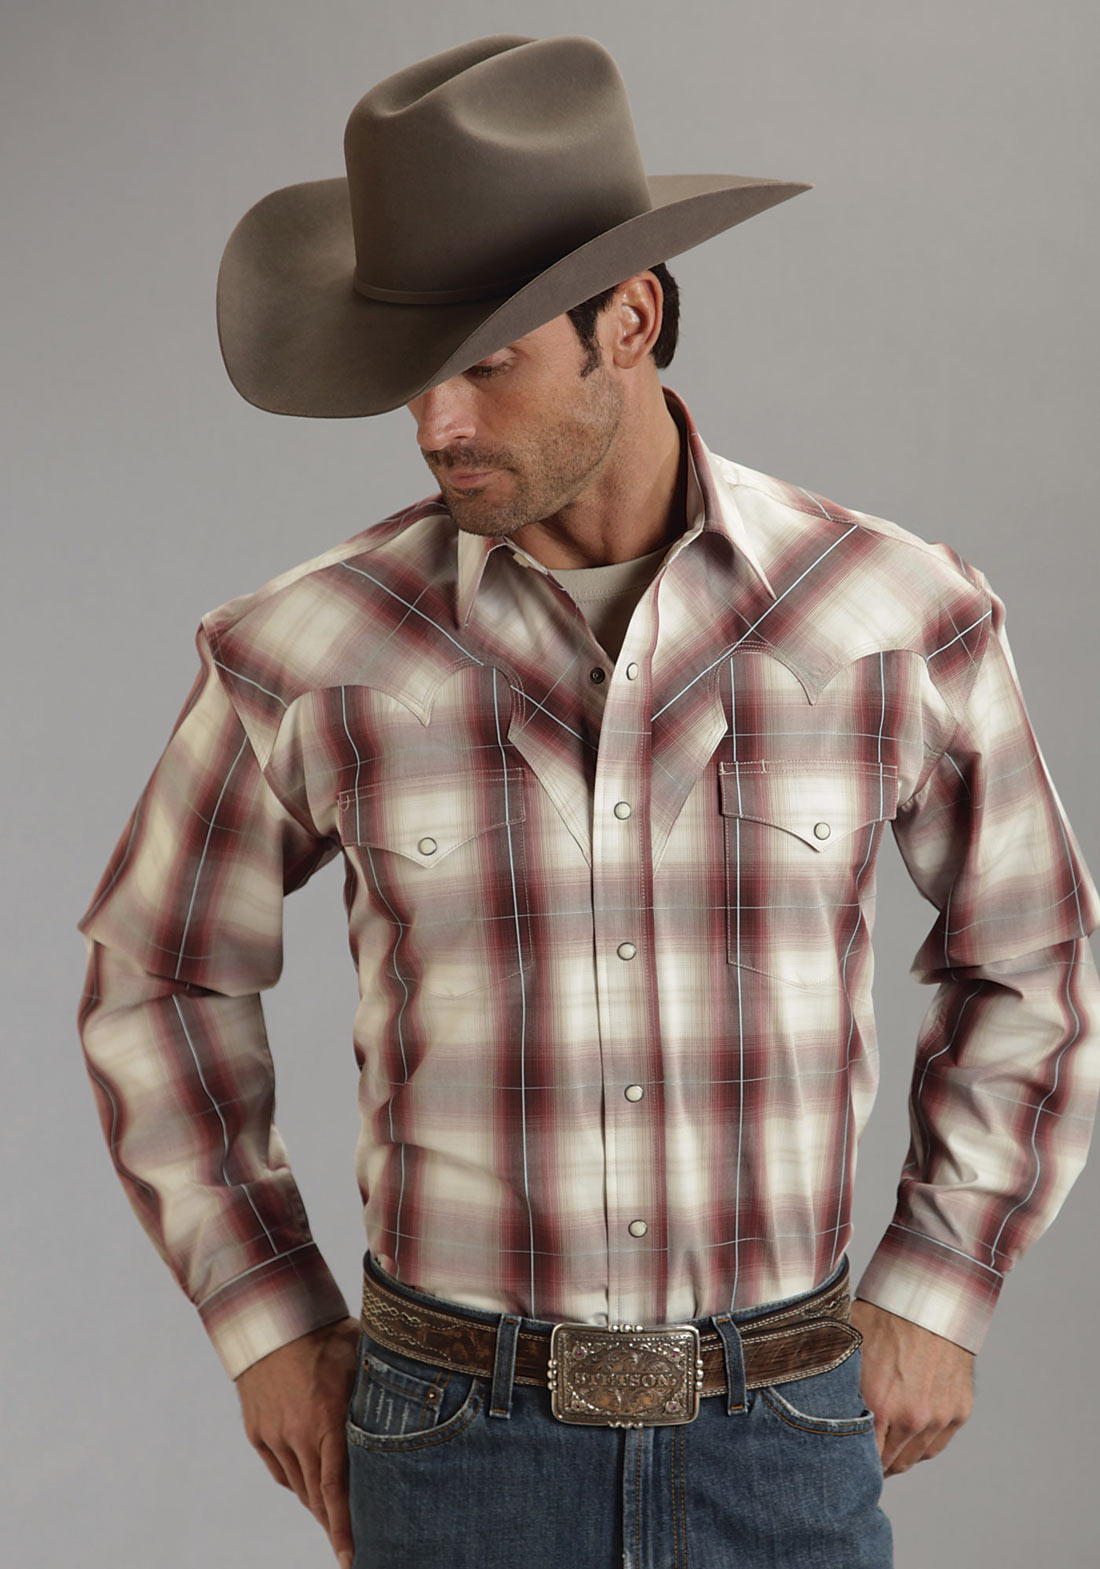 c524ae735772a Stetson Men s HUNTERS PLAID SHIRT